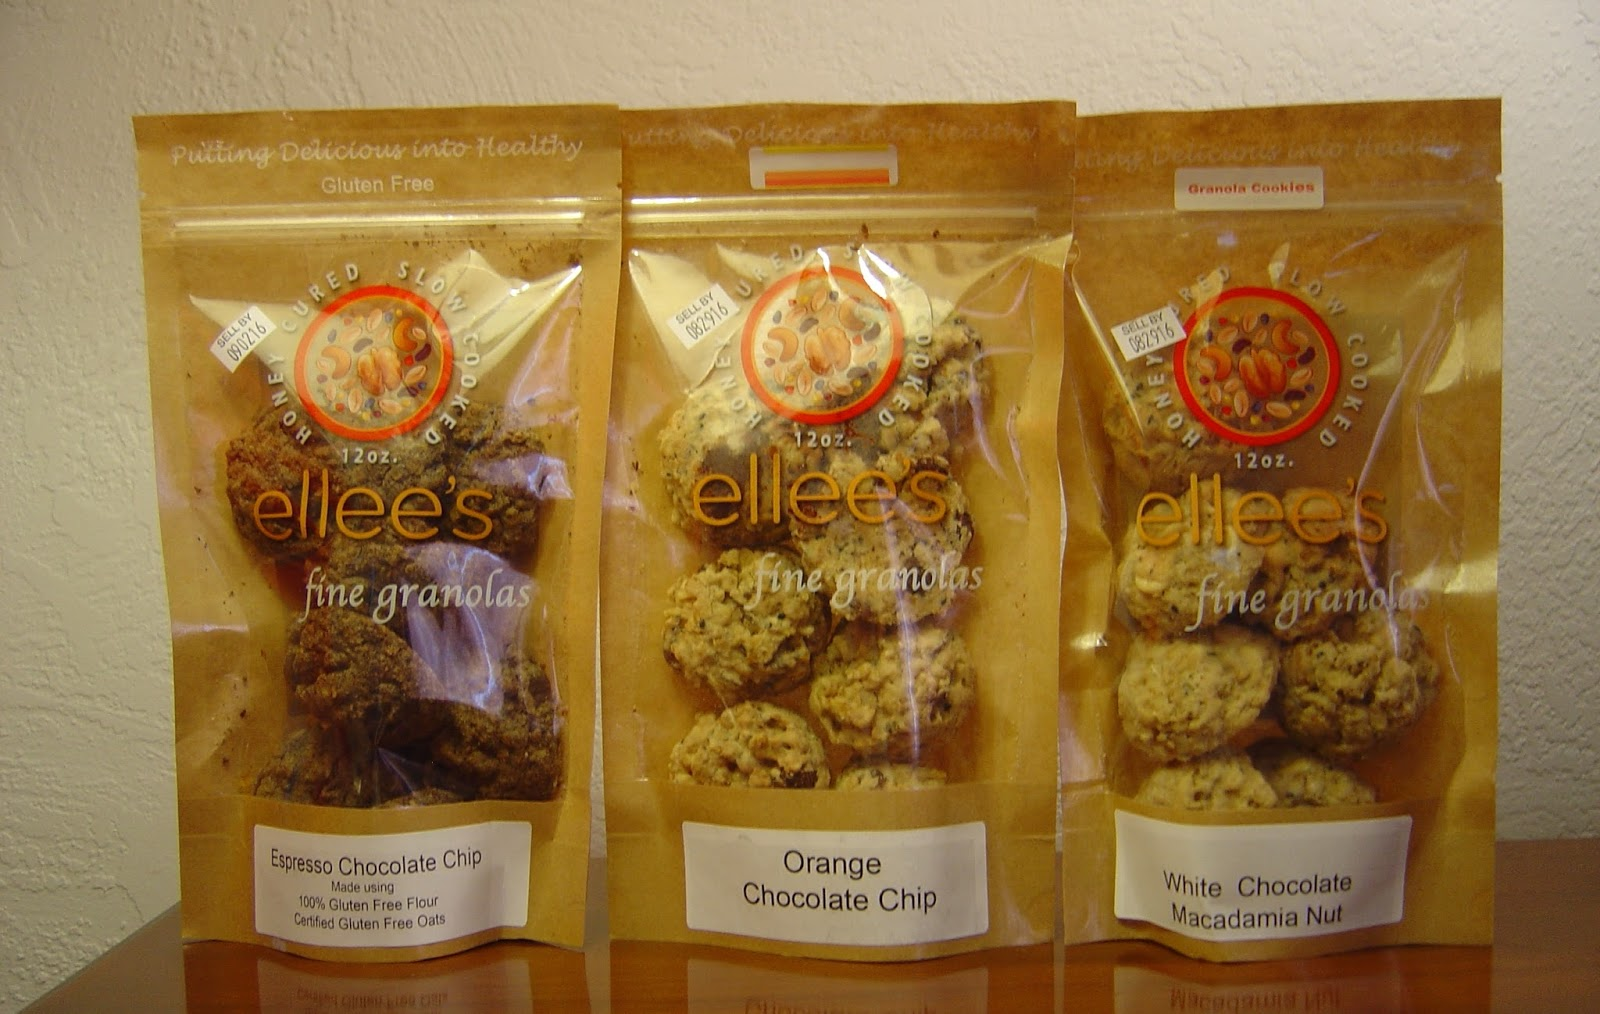 Ellee's Gourmet Granolas Espresso Chocolate Chip, Orange Chocolate Chip, and White Chocolate Macadamia Nut Granola Cookies